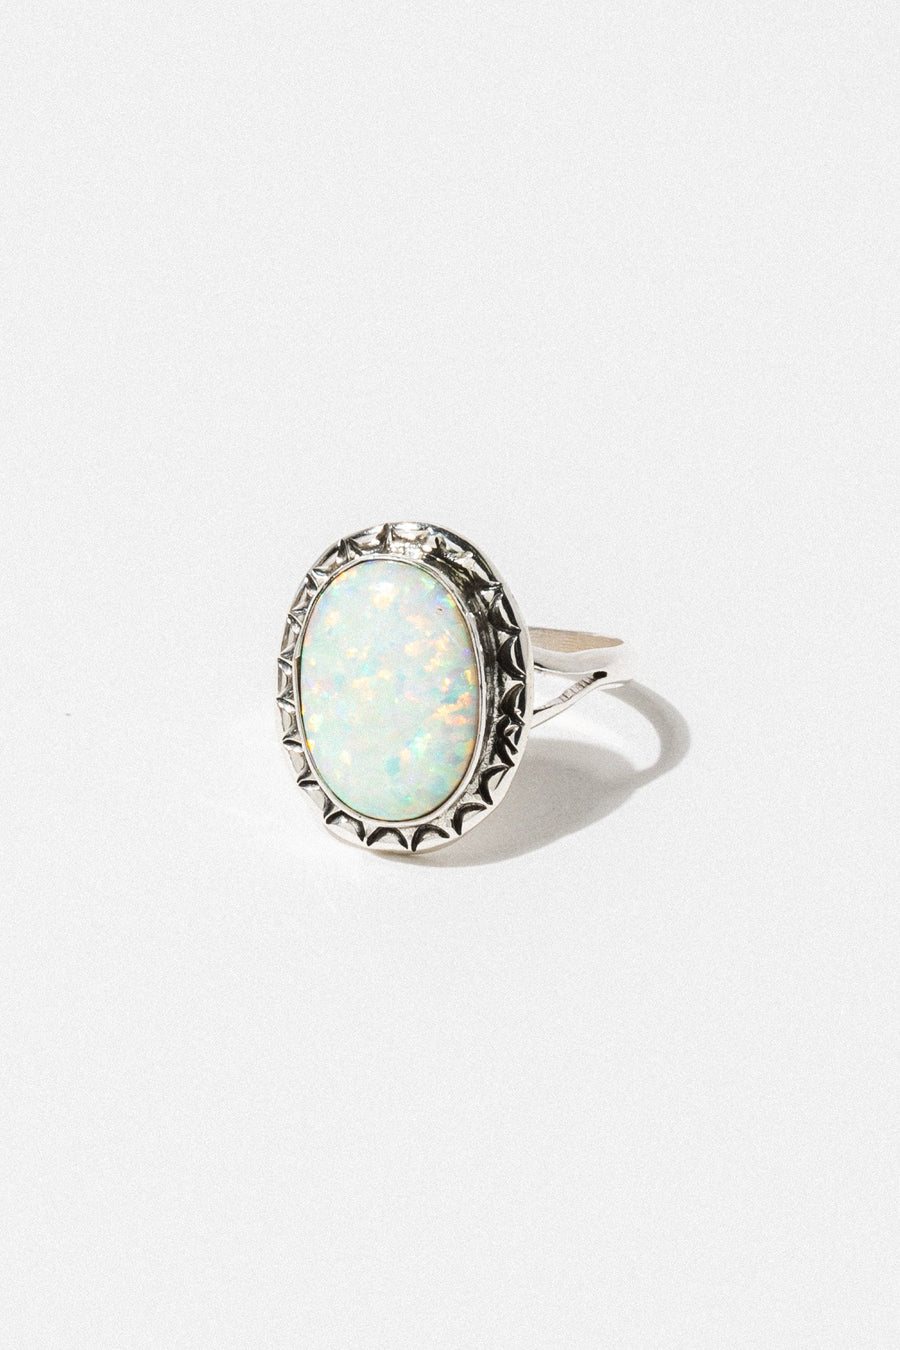 Thunderbird Jewelry Jewelry Opal / US 6 Midnight Opal Ring